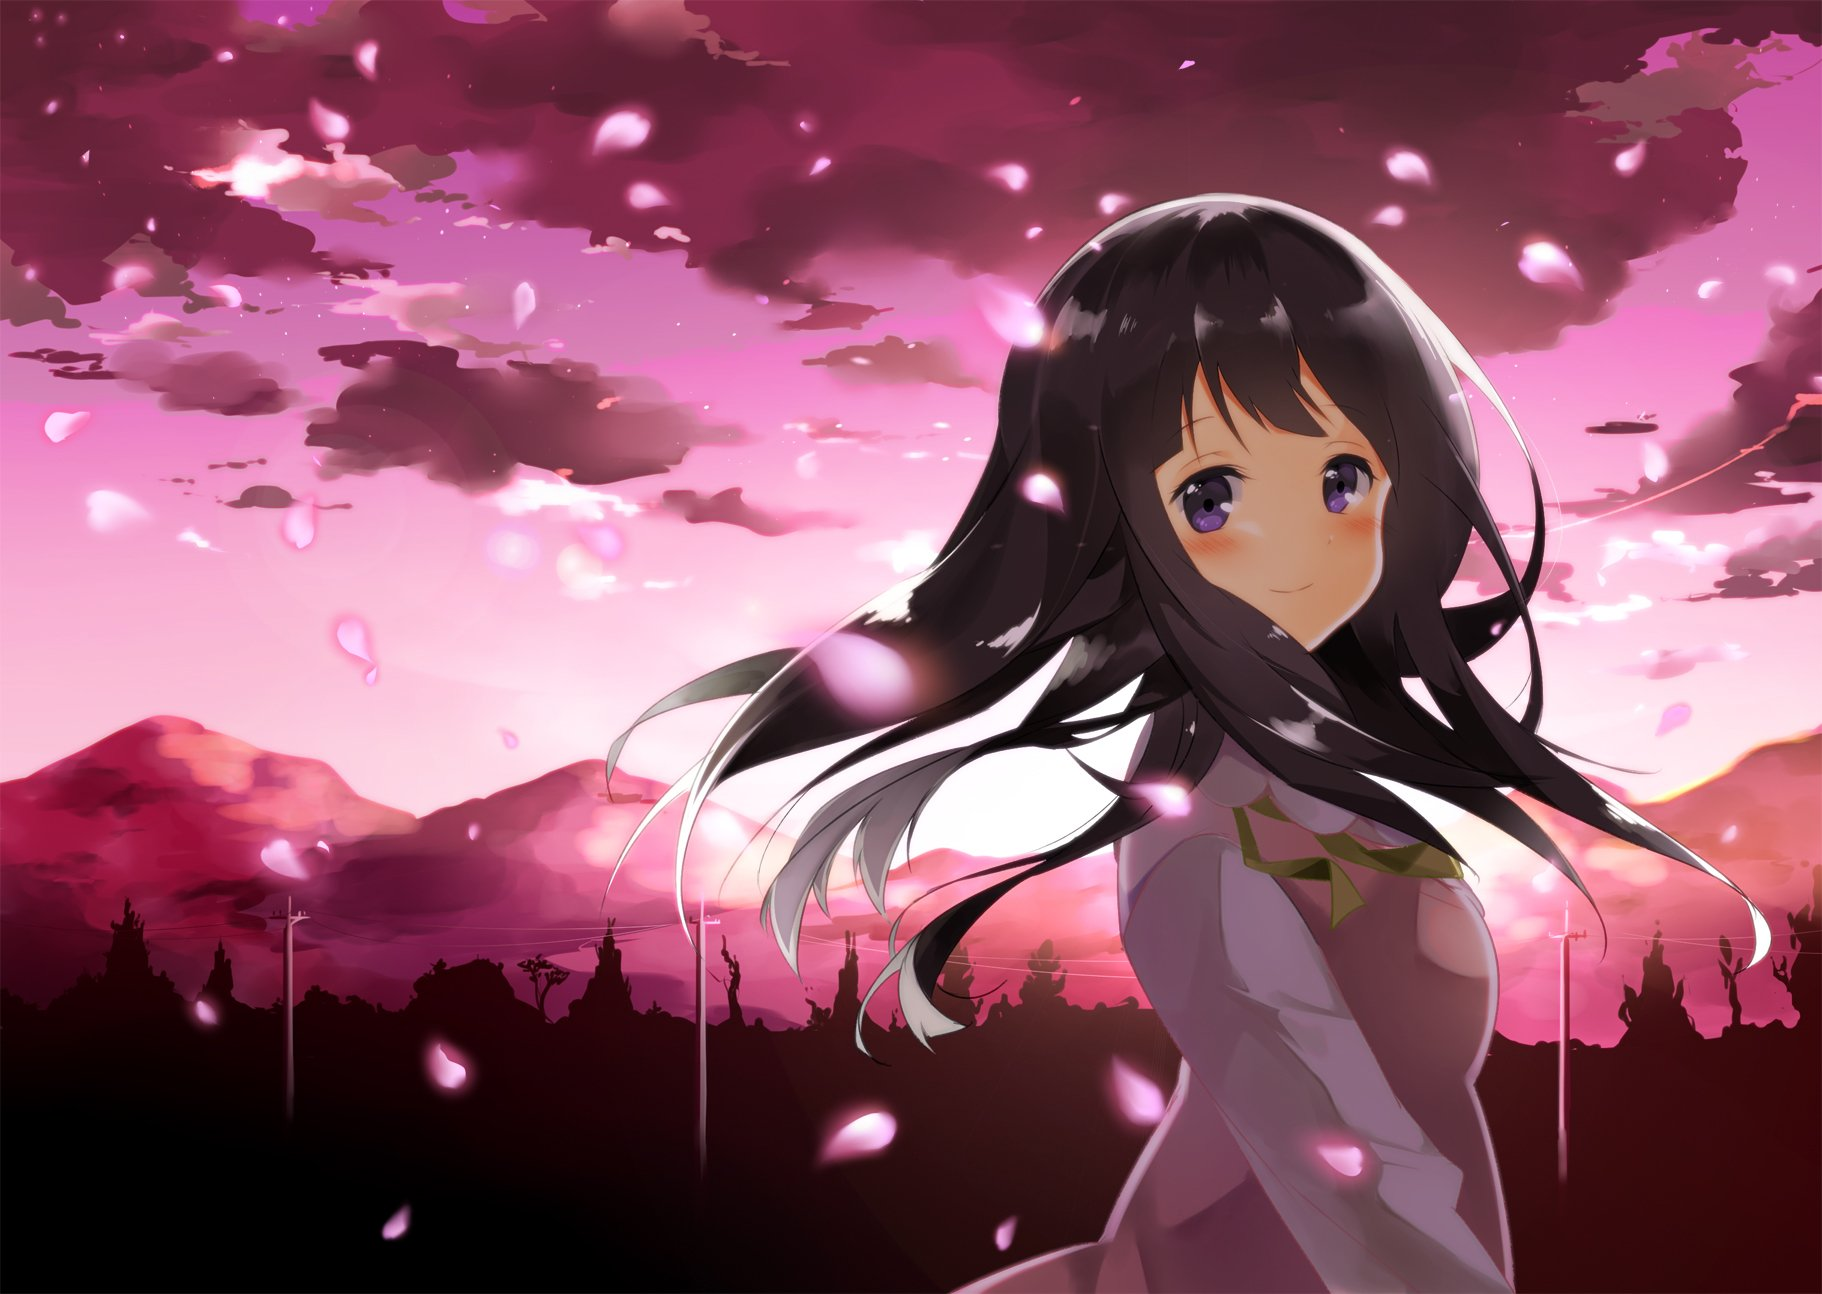 Anime - Hyouka  Eru Chitanda Wallpaper